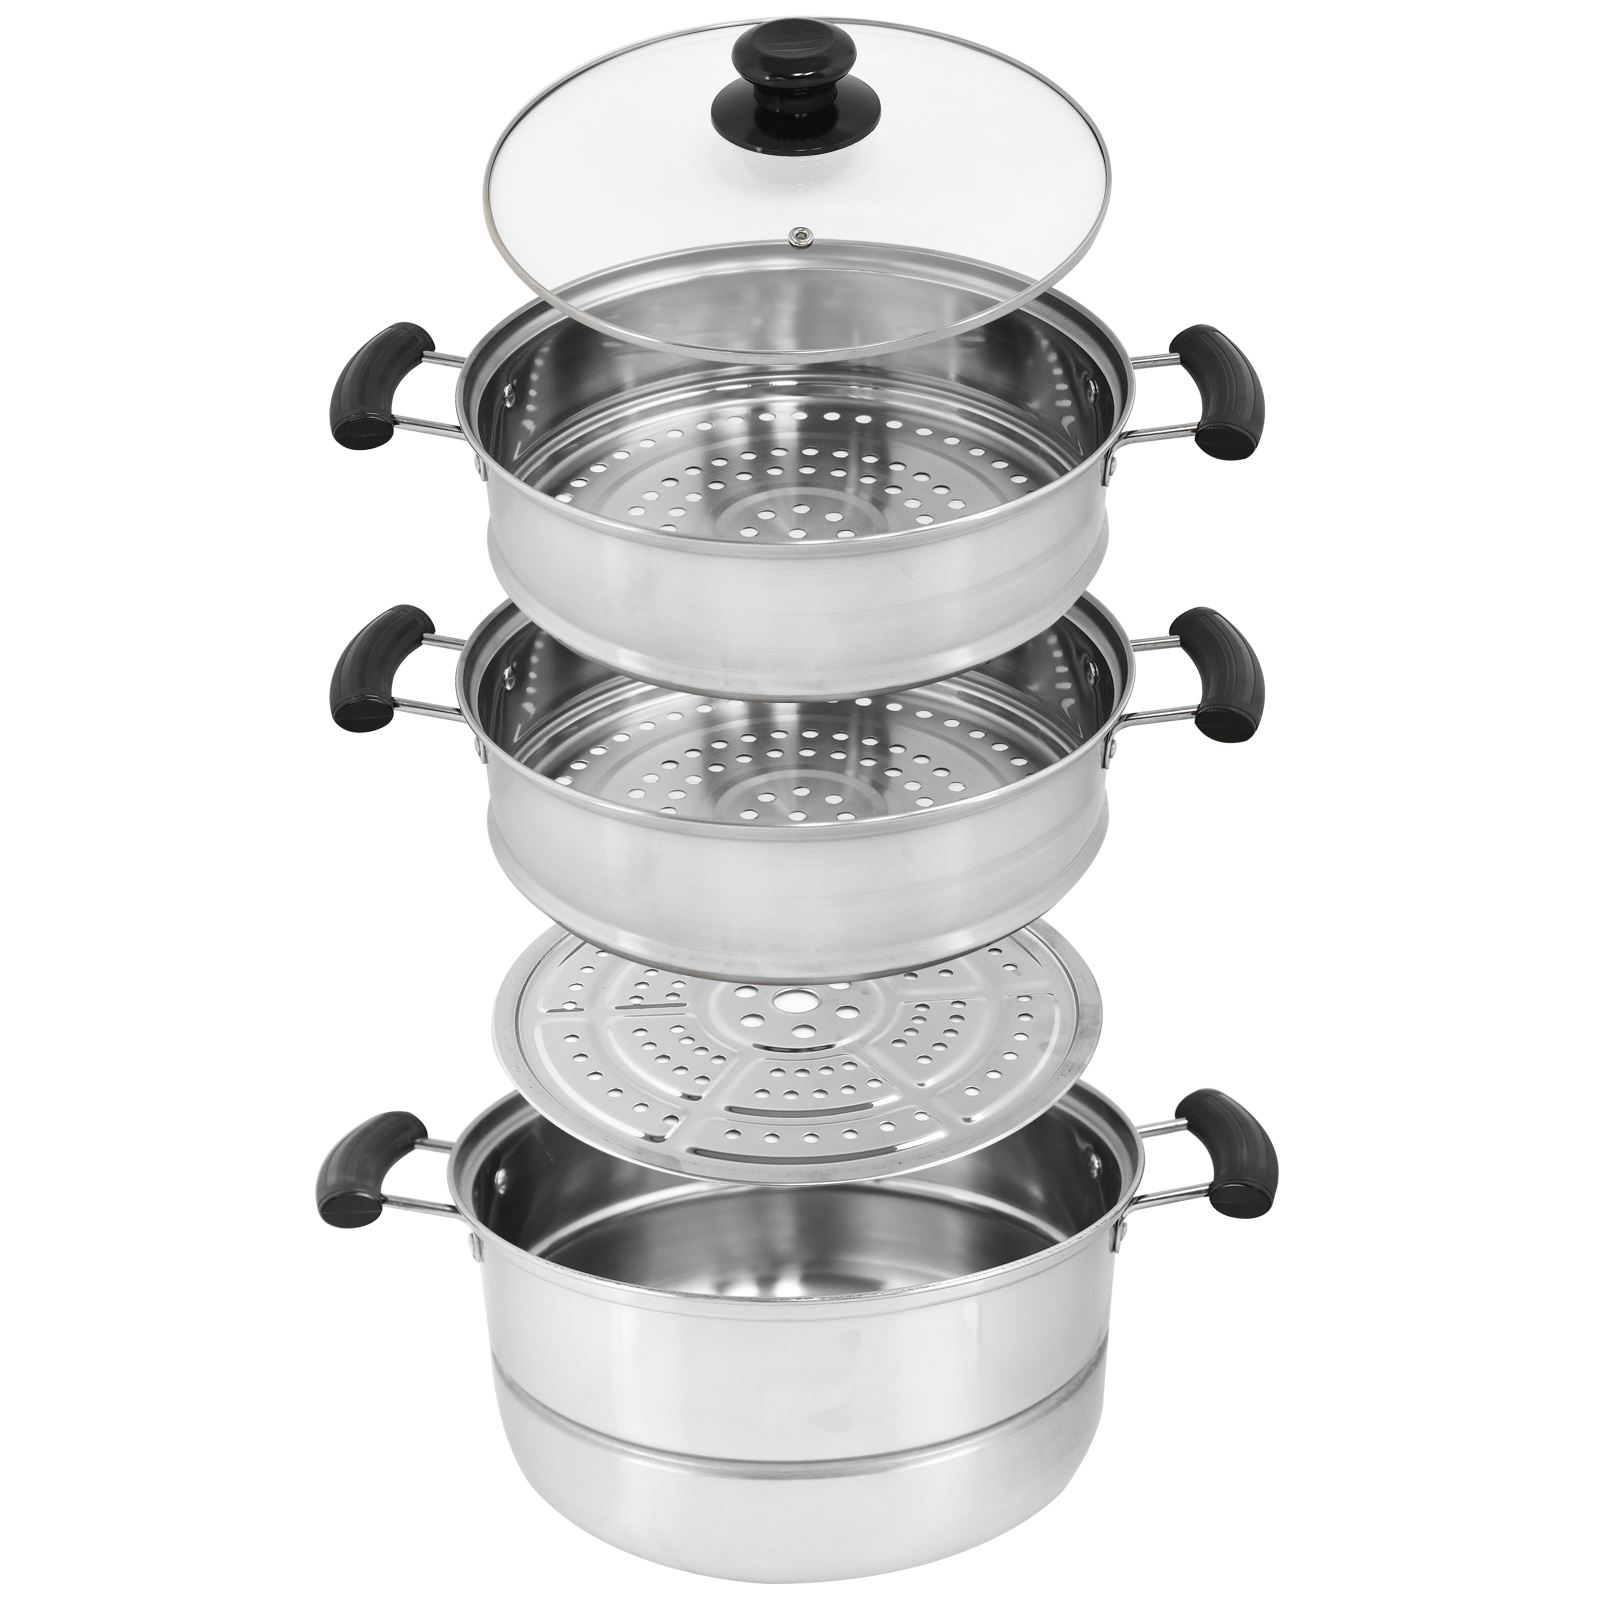 Cooking Pot Steamer ~ Cm tier steamer cooker pot set pan cook food glass